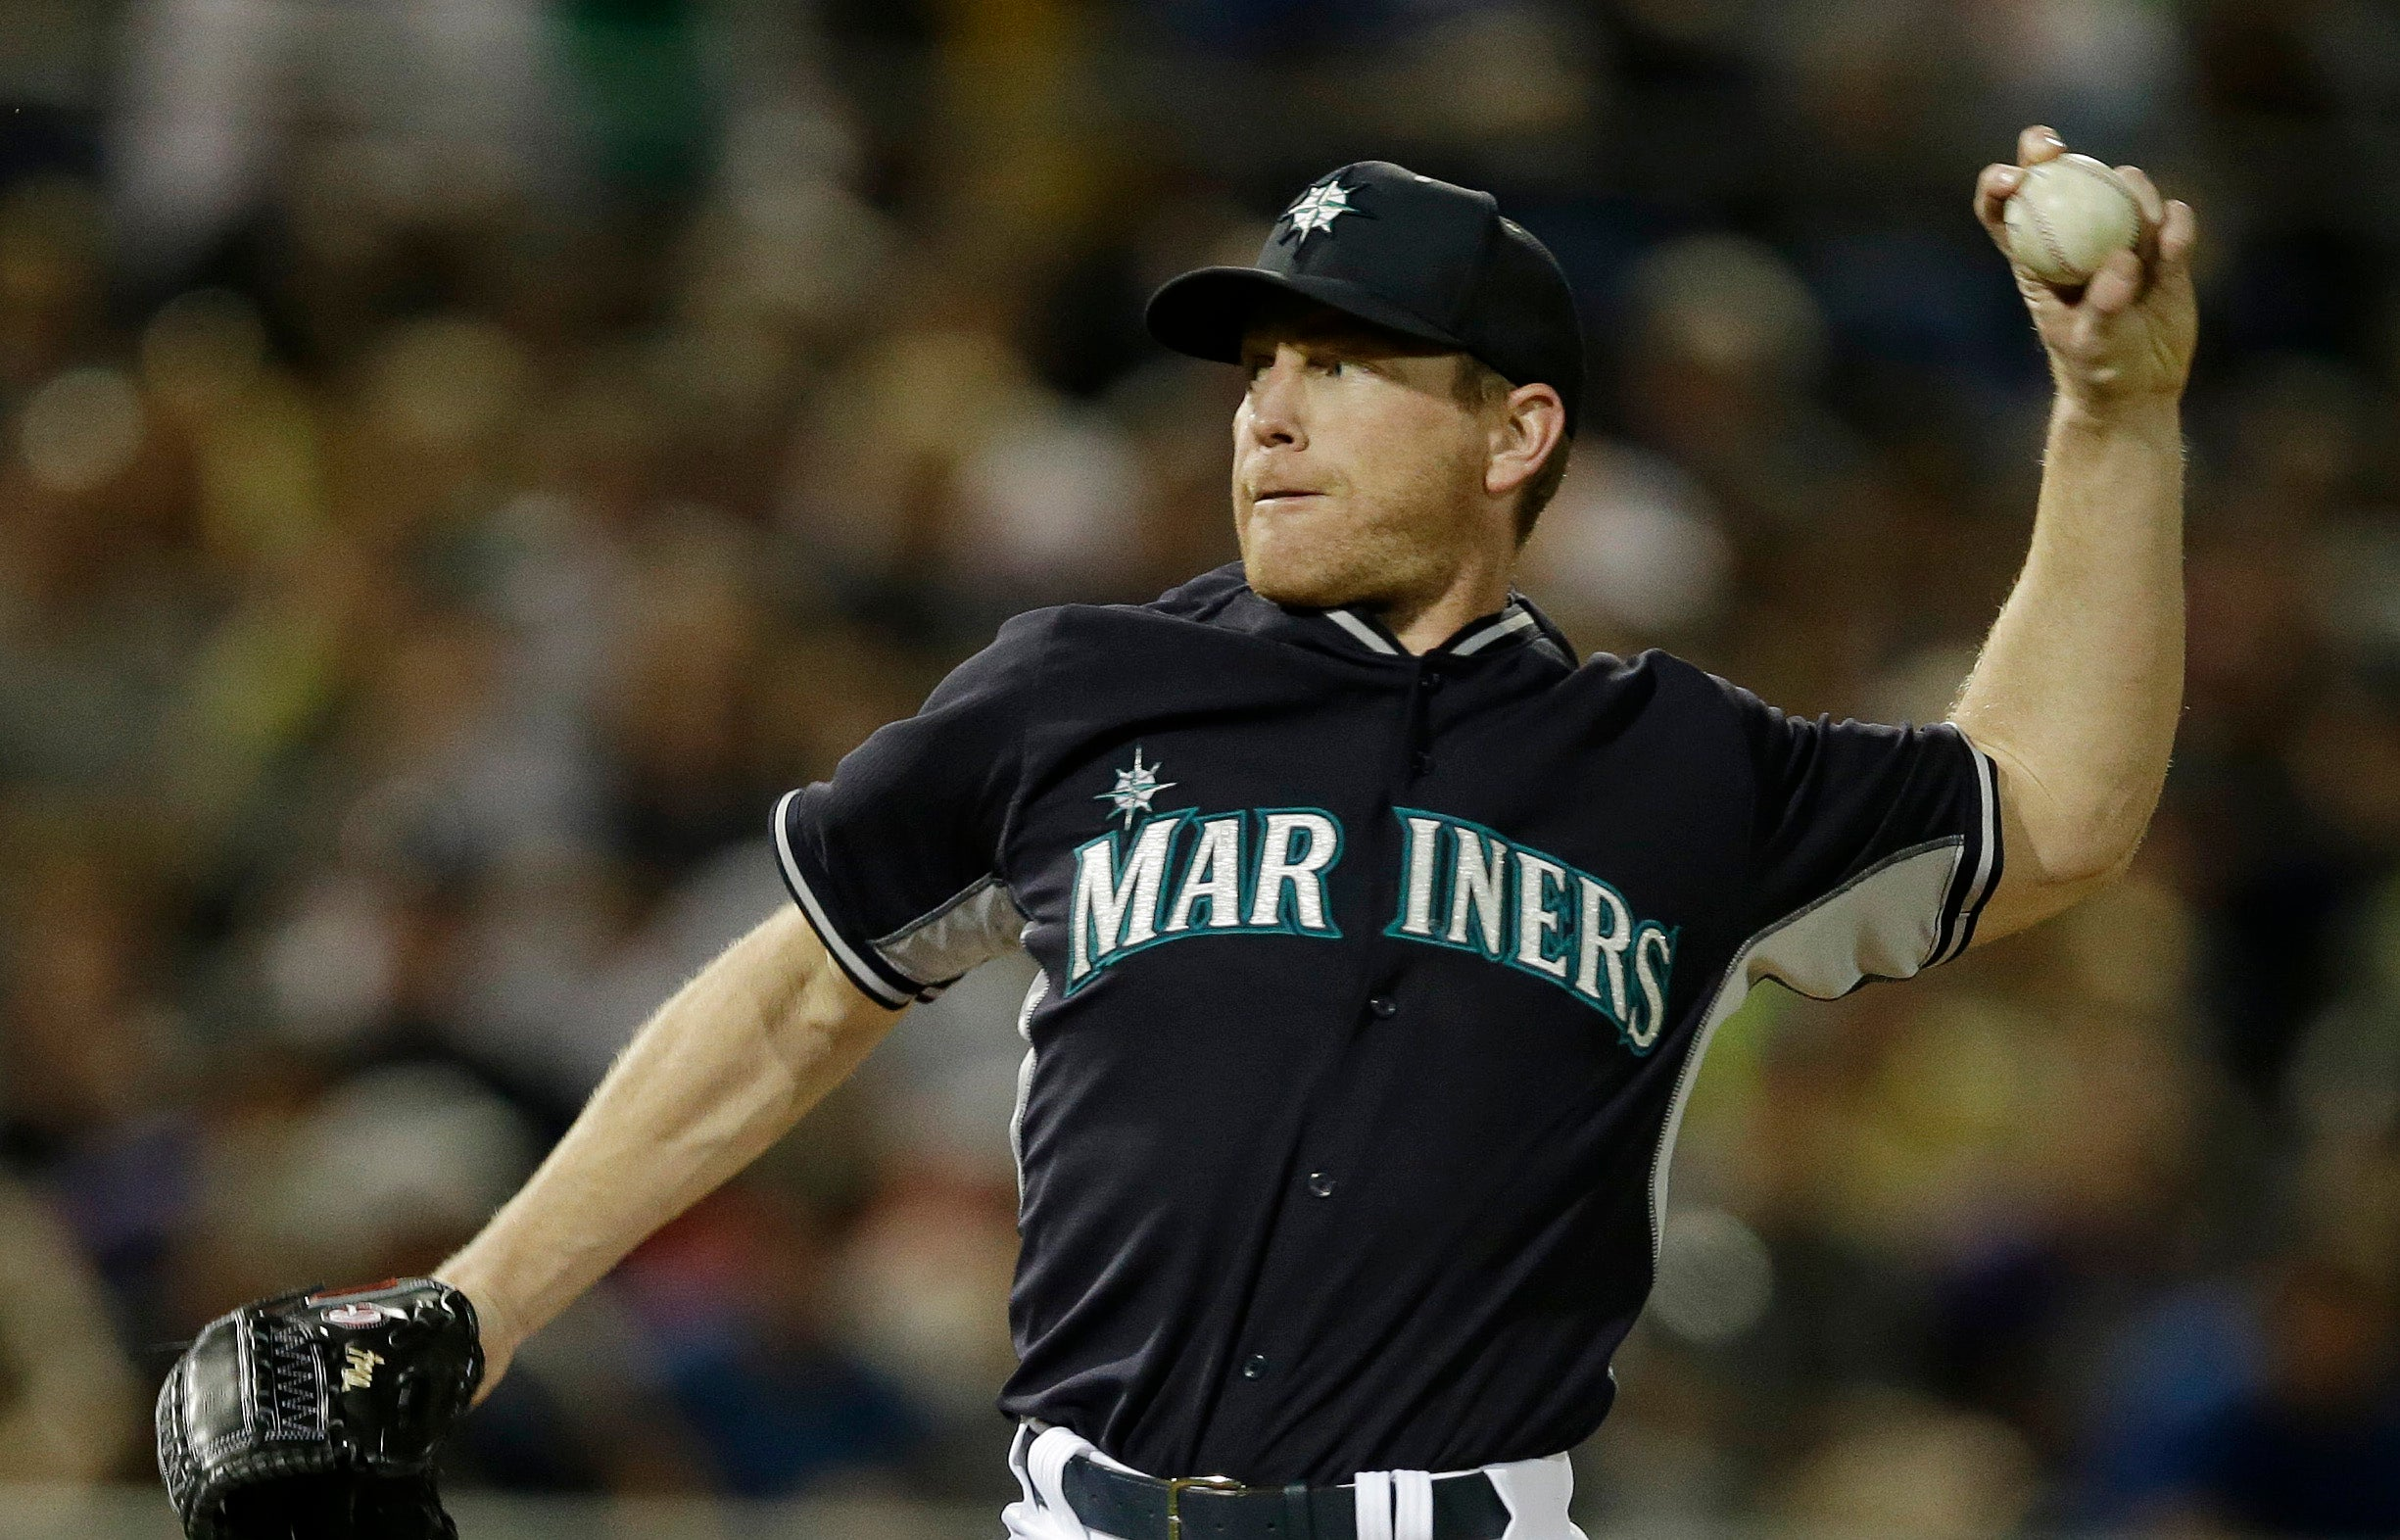 The Mariners Tried To Screw Randy Wolf, So He Walked Away